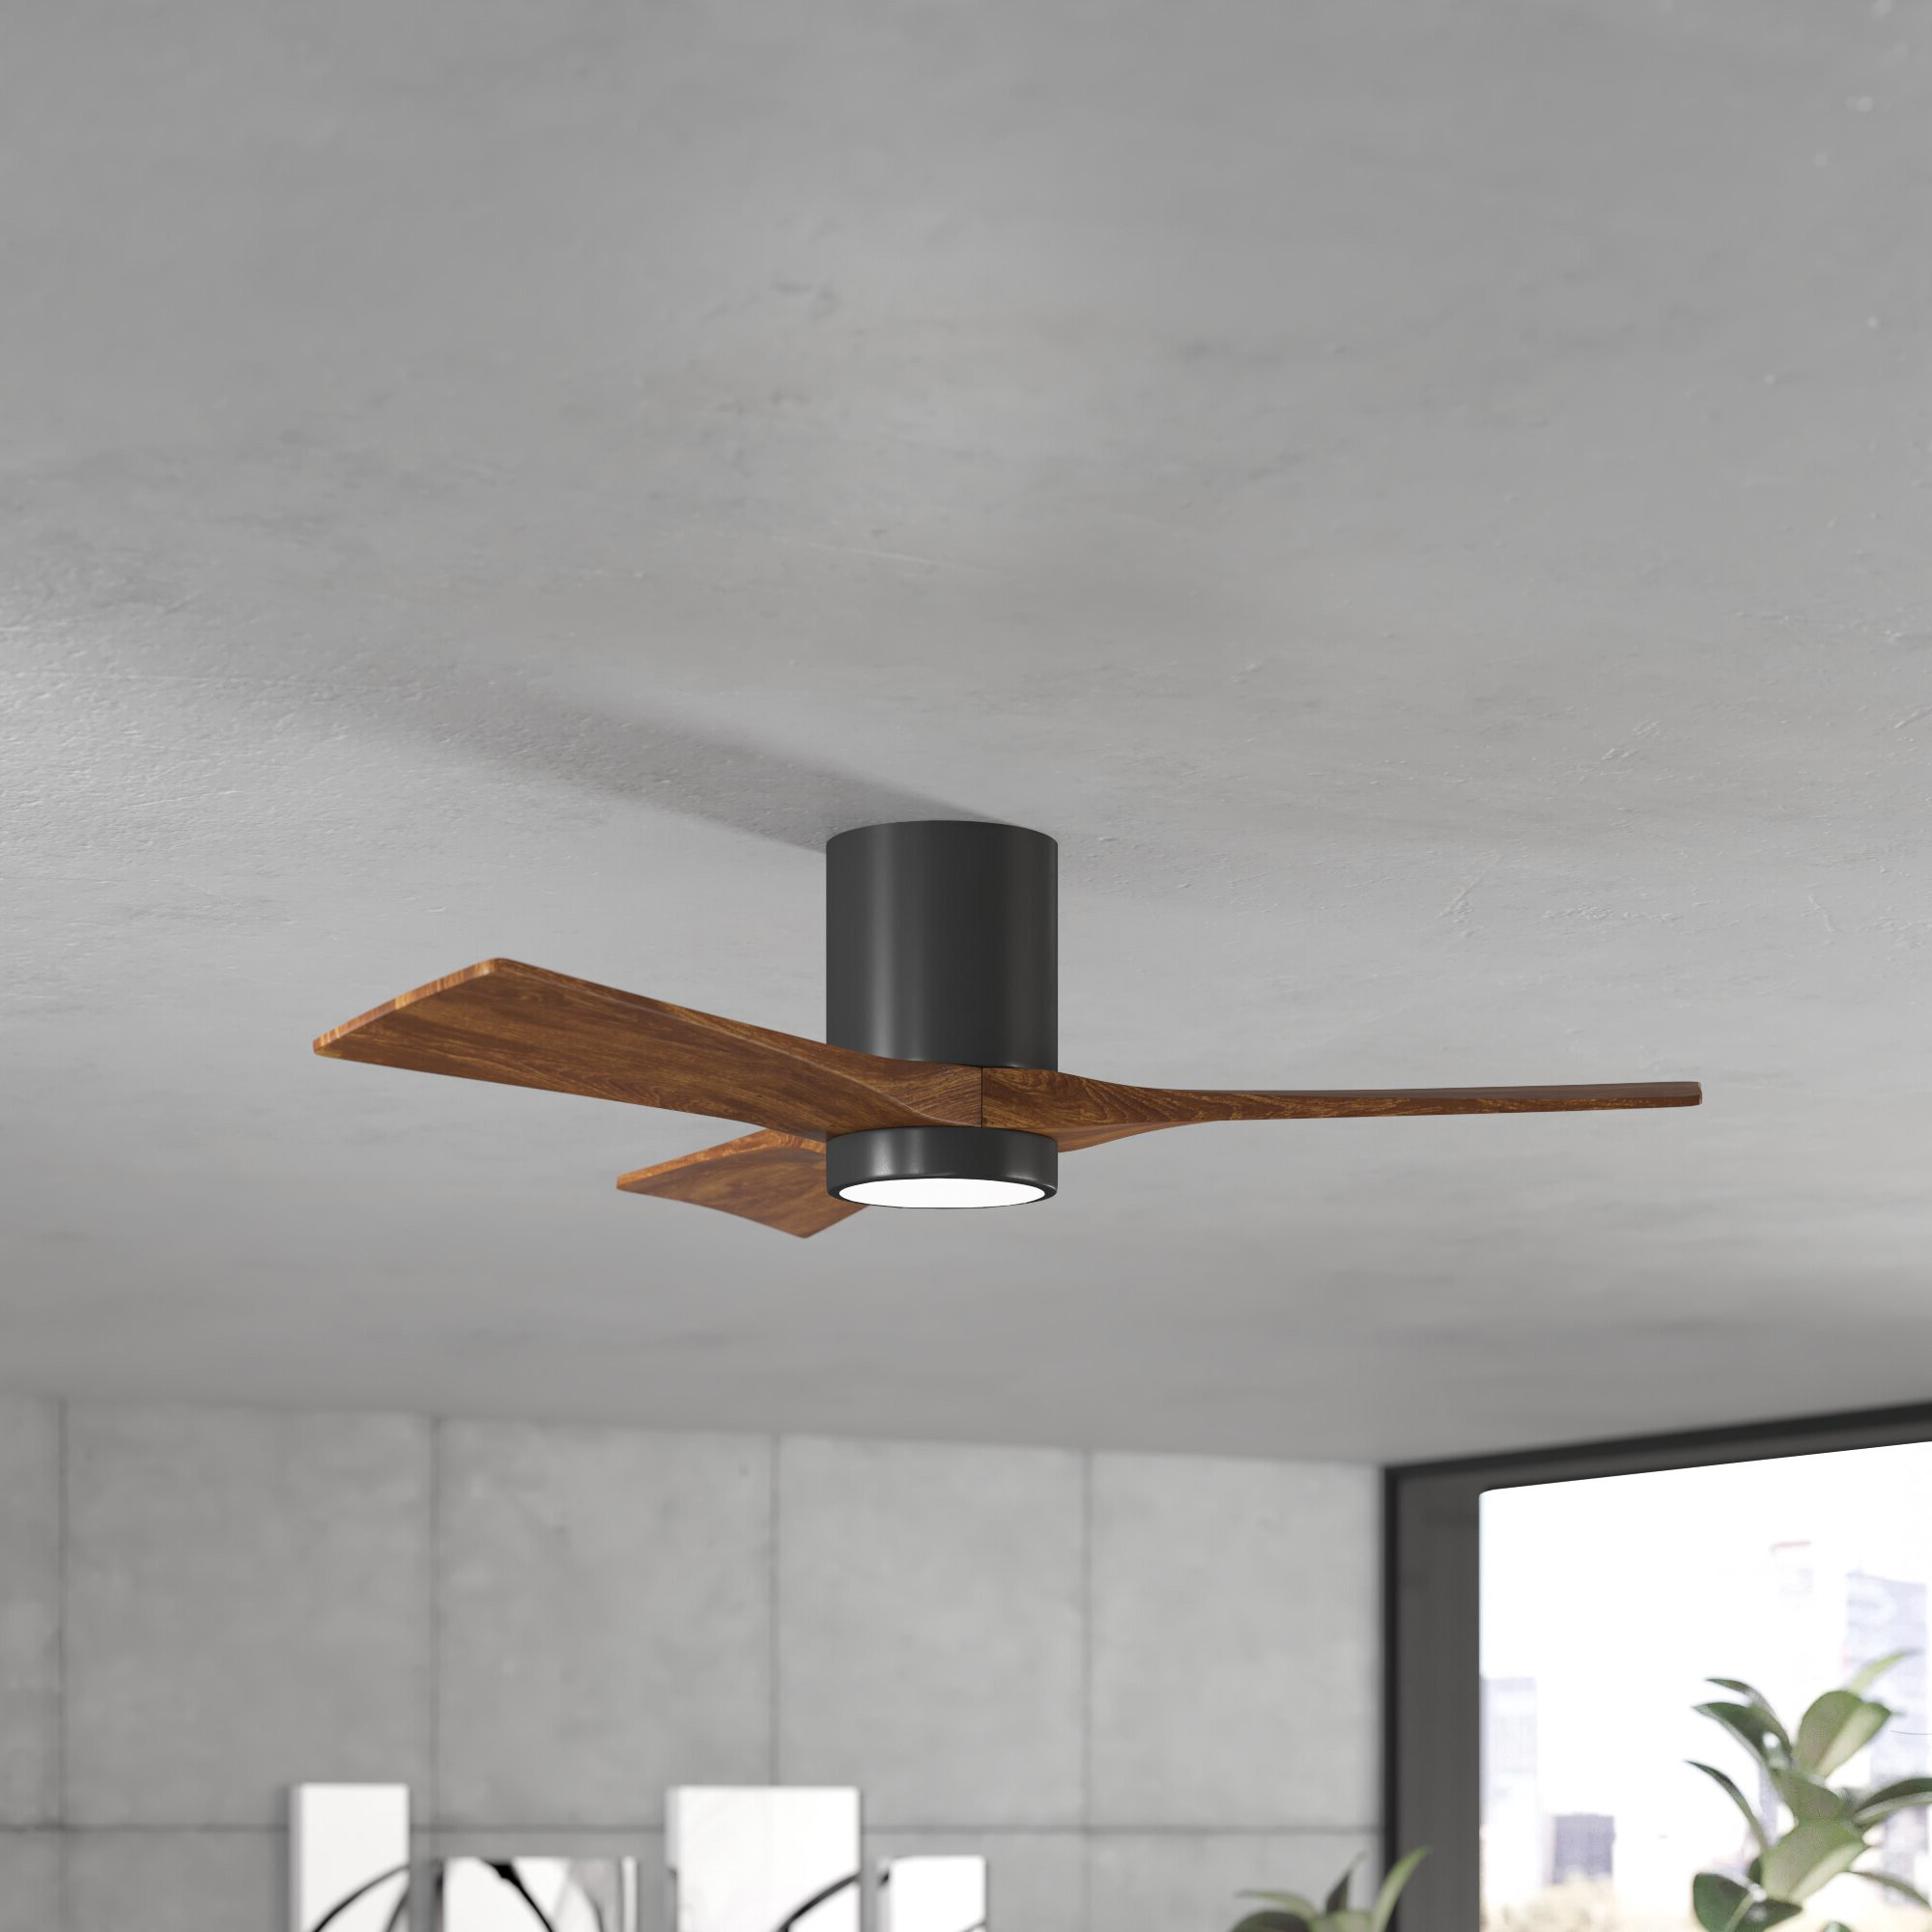 "Favorite Tyree 3 Blade Ceiling Fans Regarding 42"" Trost 3 Blade Hugger Ceiling Fan With Wall Remote And Light Kit (View 9 of 20)"